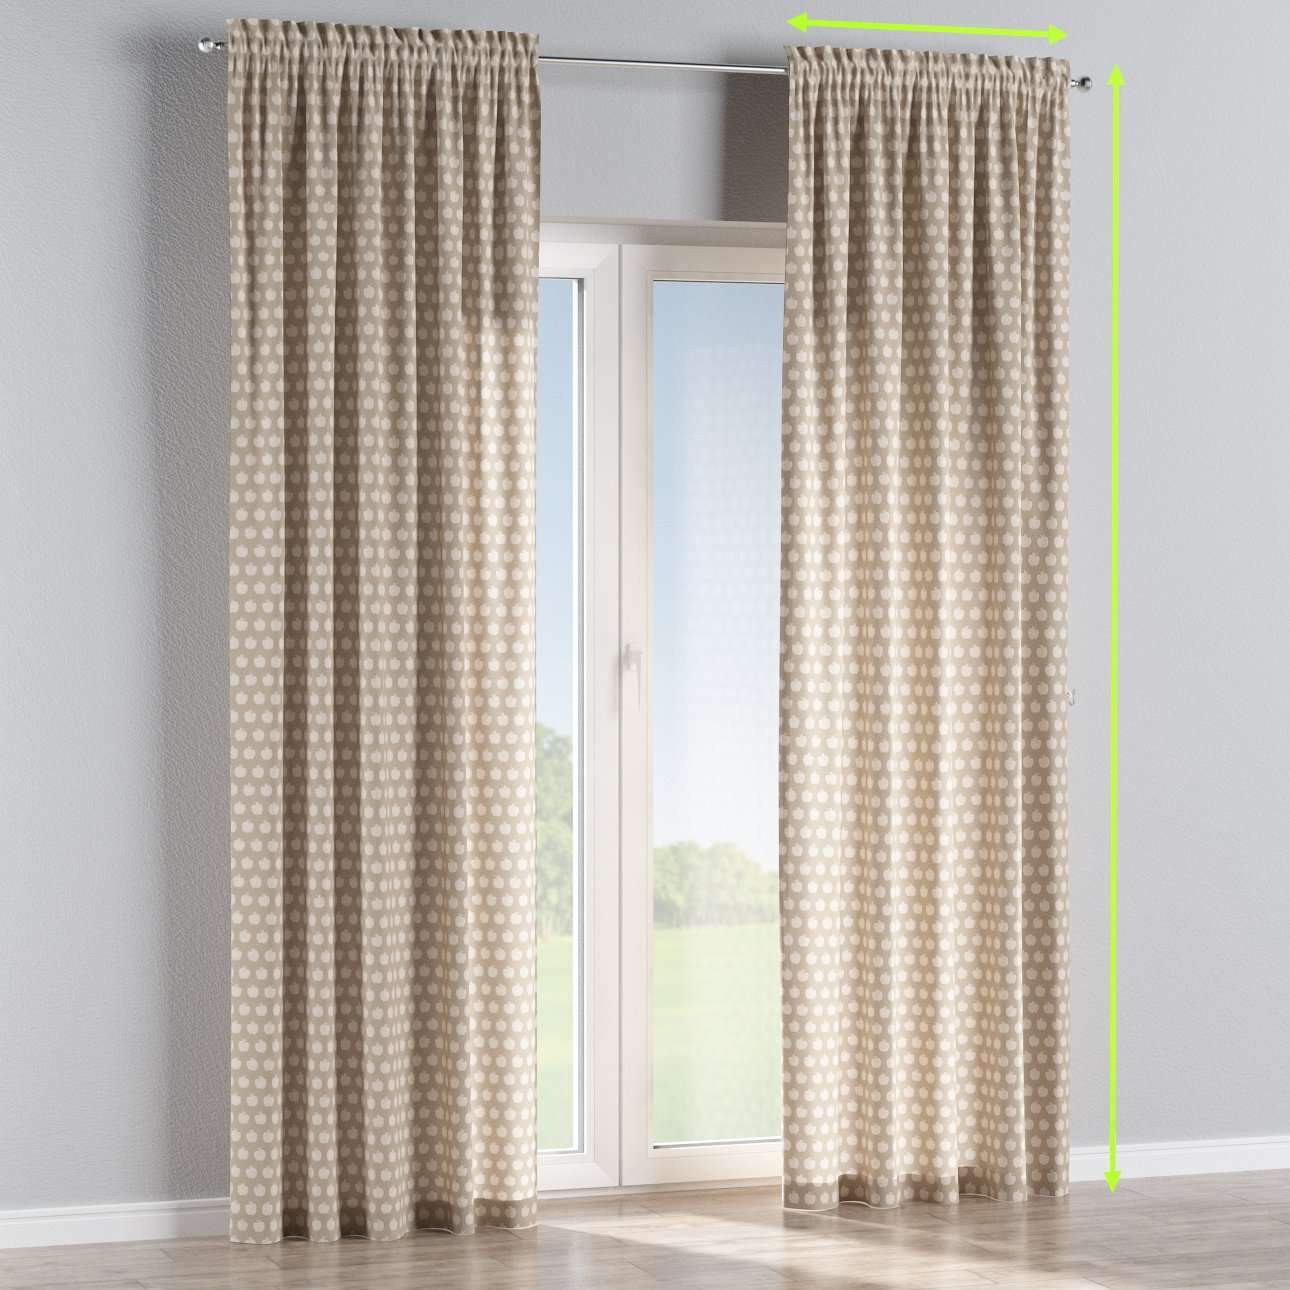 Slot and frill curtains in collection Flowers, fabric: 140-55